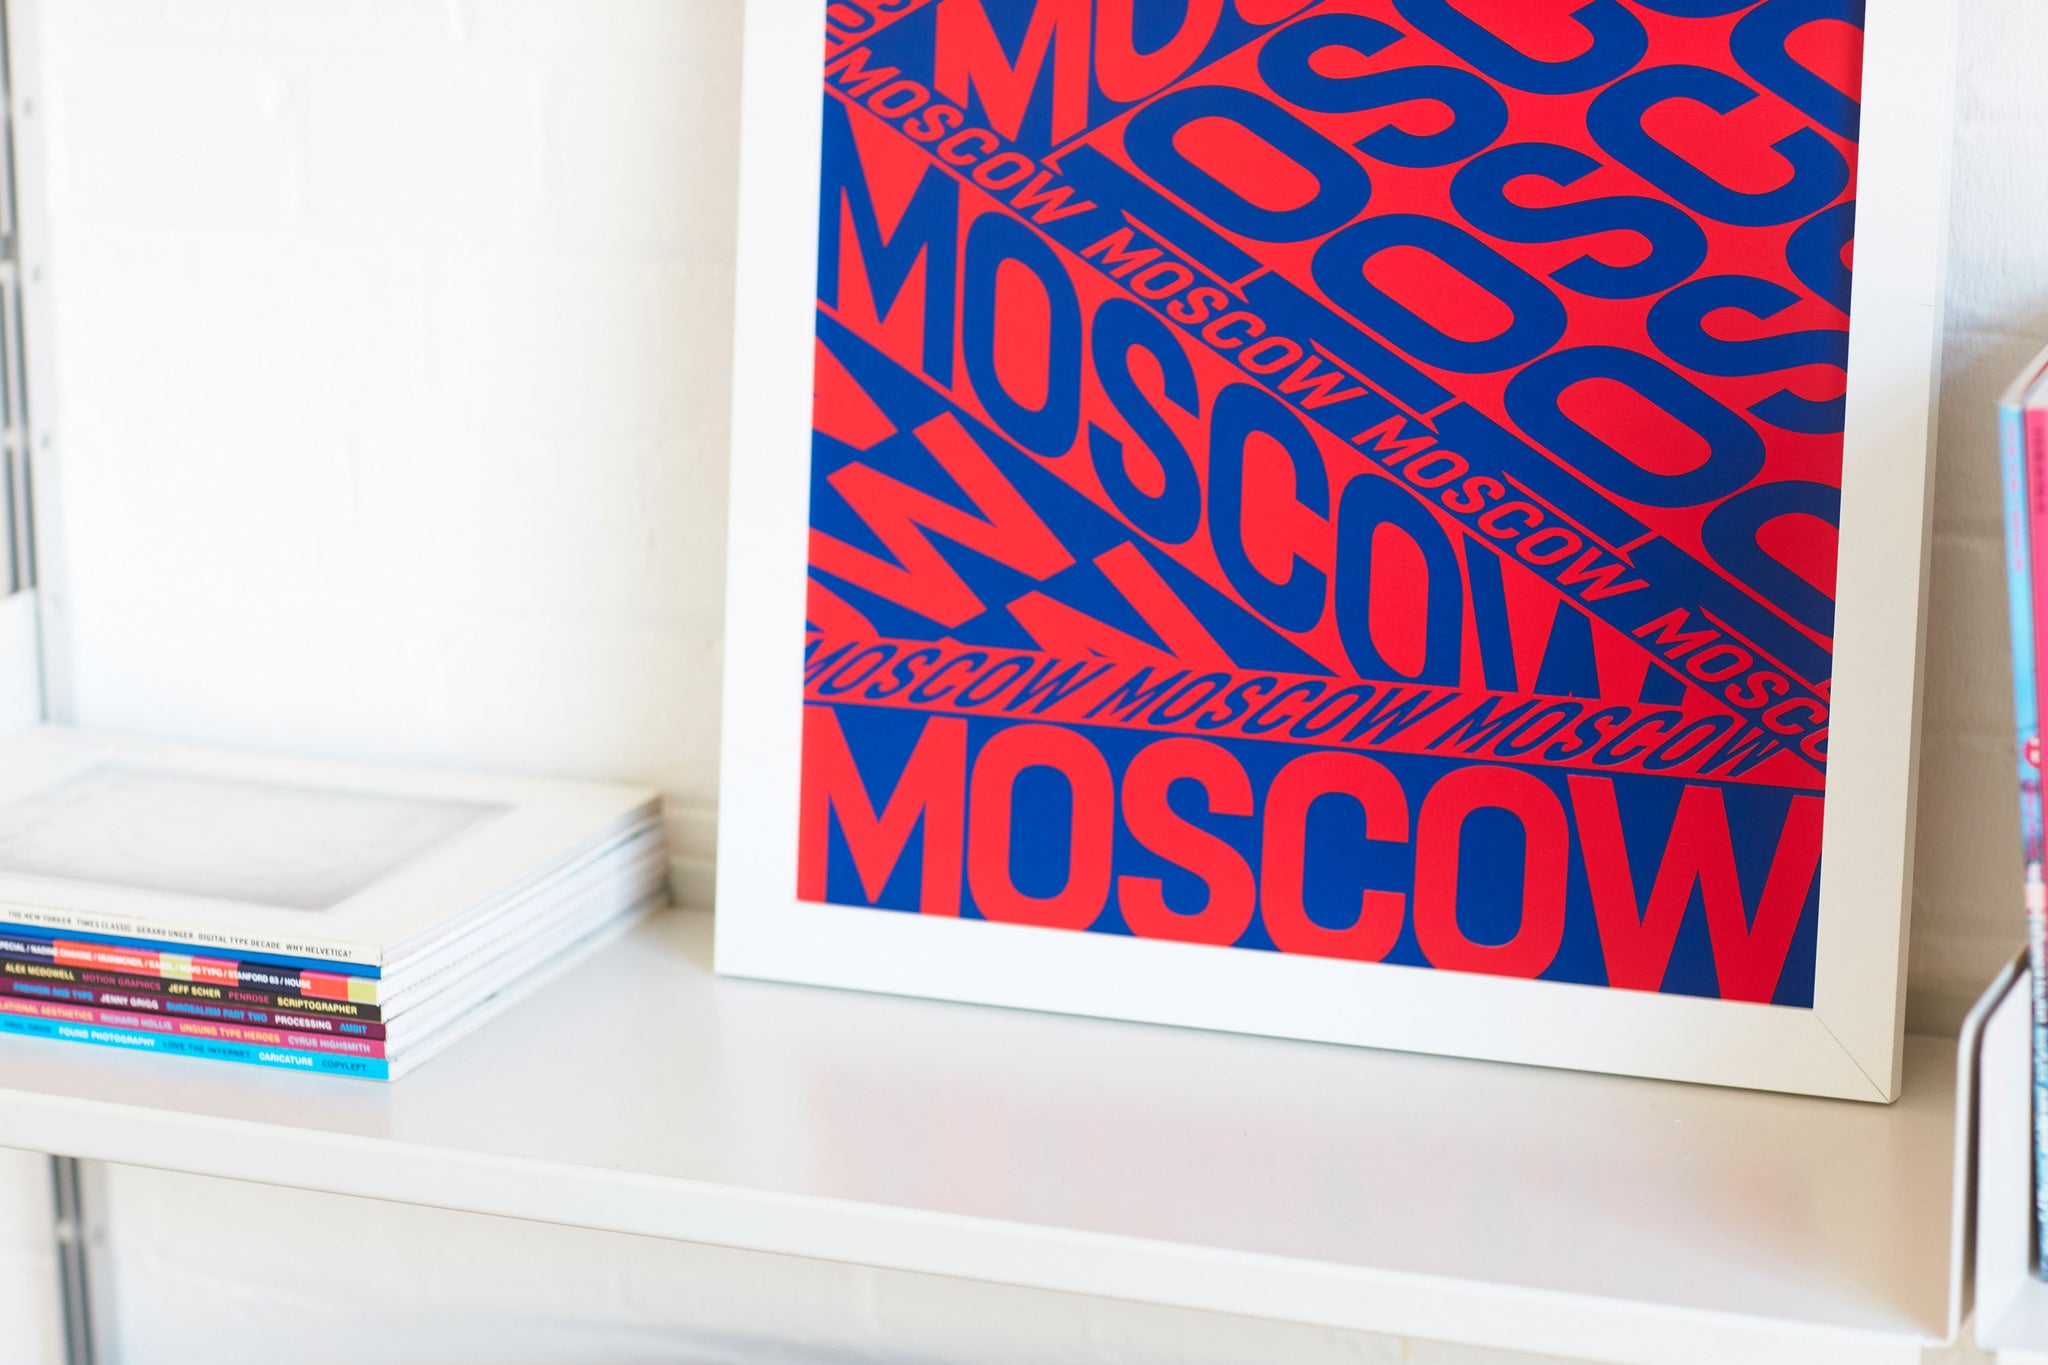 Moscow by Anna Kulachek Limited Edition Screen Printed Poster